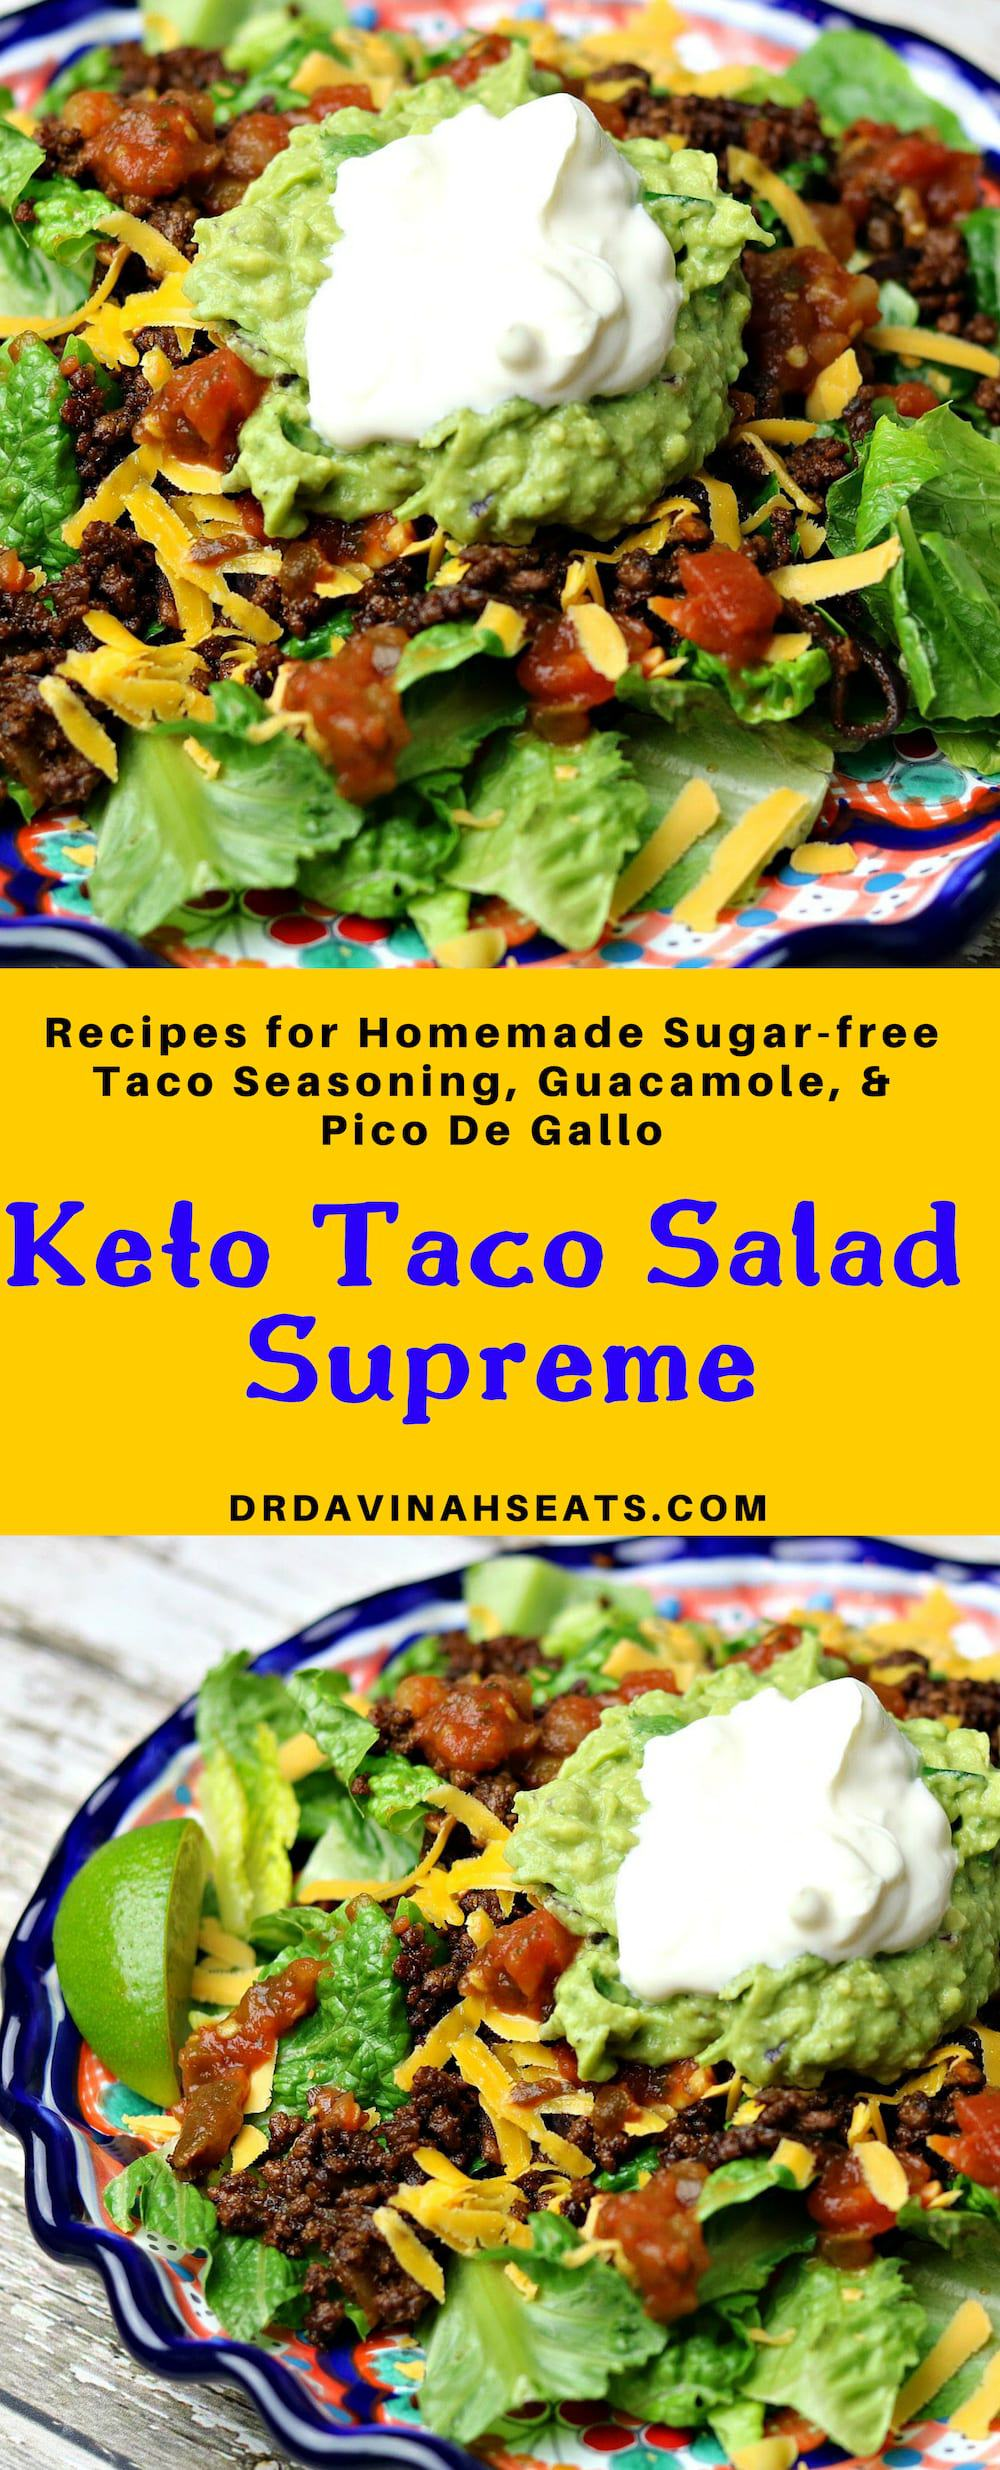 An easy, low-carb and keto-friendly option for Taco Supreme at home. Includes directions for an easy guacamole, pico de gallo, and clean taco seasoning. #keto #lowcarb #ketotaco #tacosalad #guacamole #picodegallo #tacoseasoning